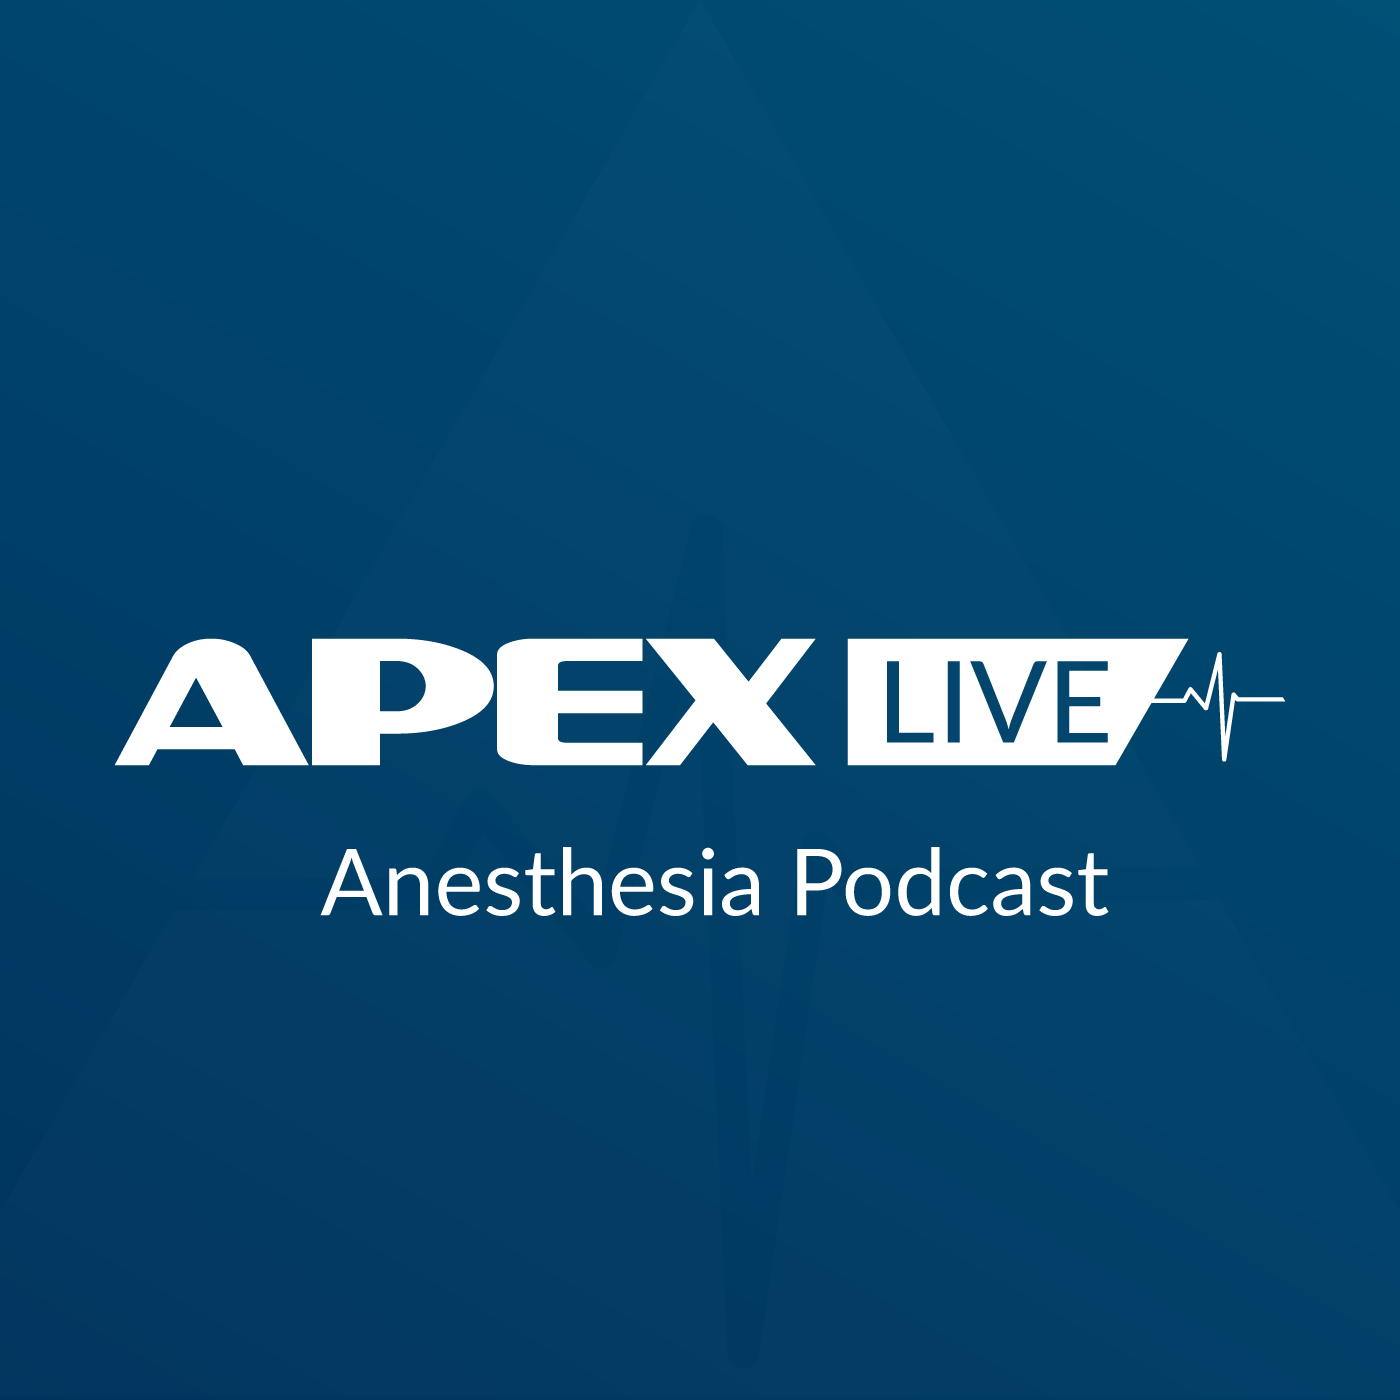 apex live podcast thumb